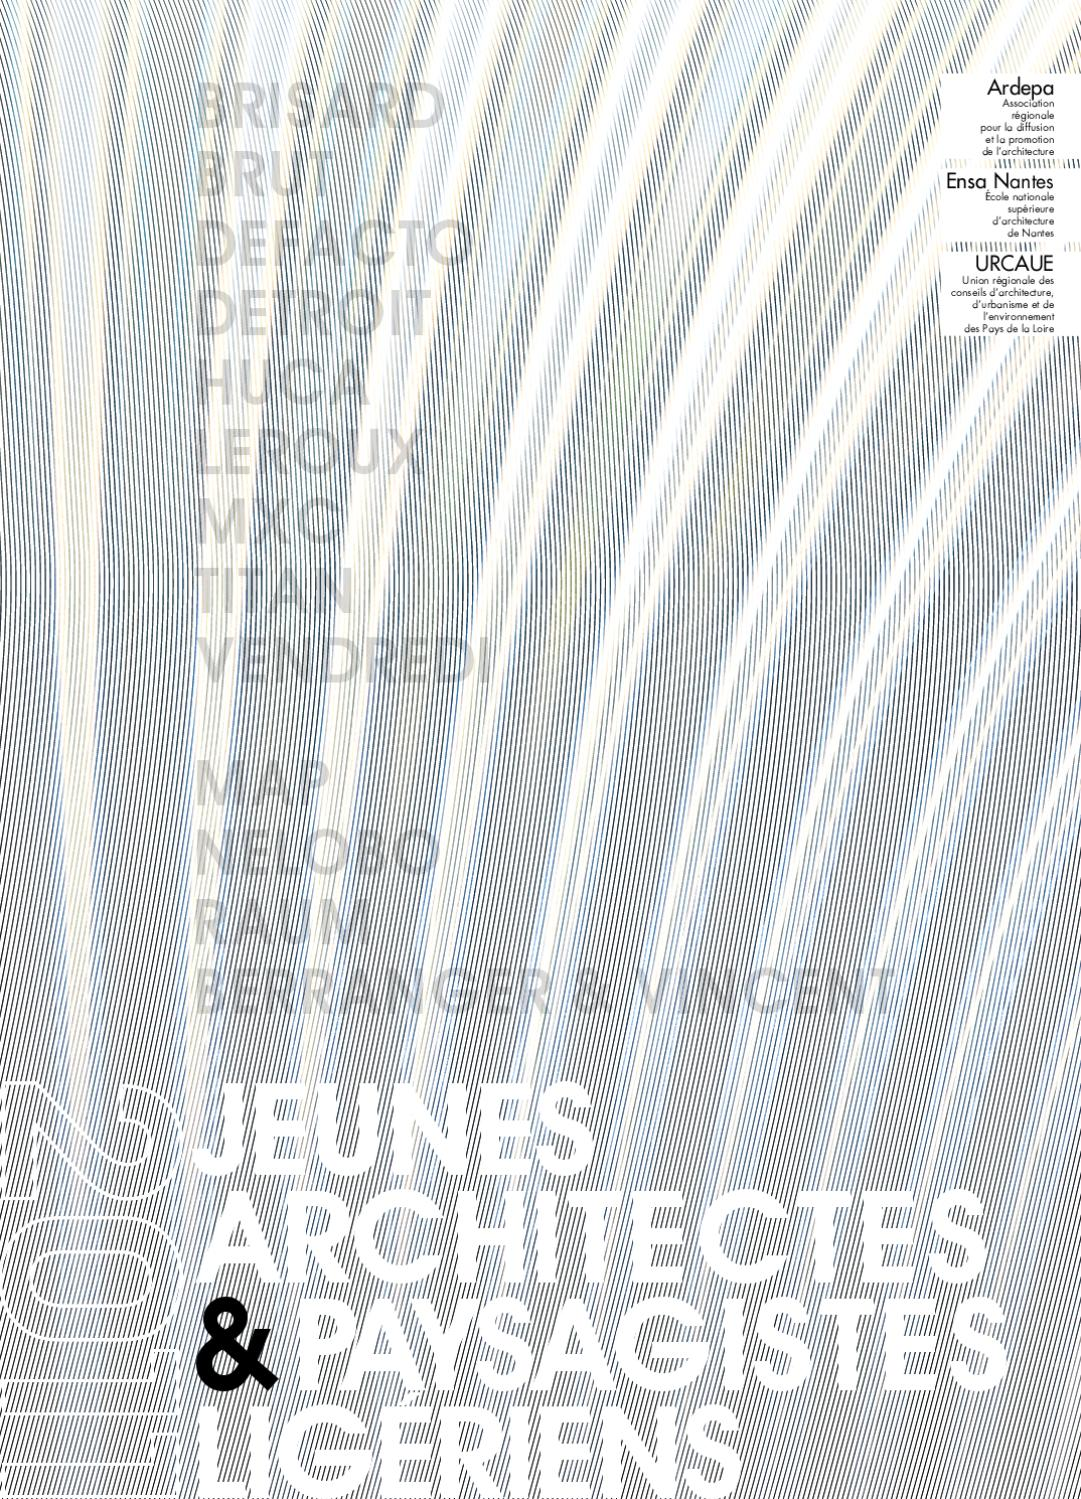 jeunes architectes et paysagistes lig riens 2011 by caue 44 issuu. Black Bedroom Furniture Sets. Home Design Ideas